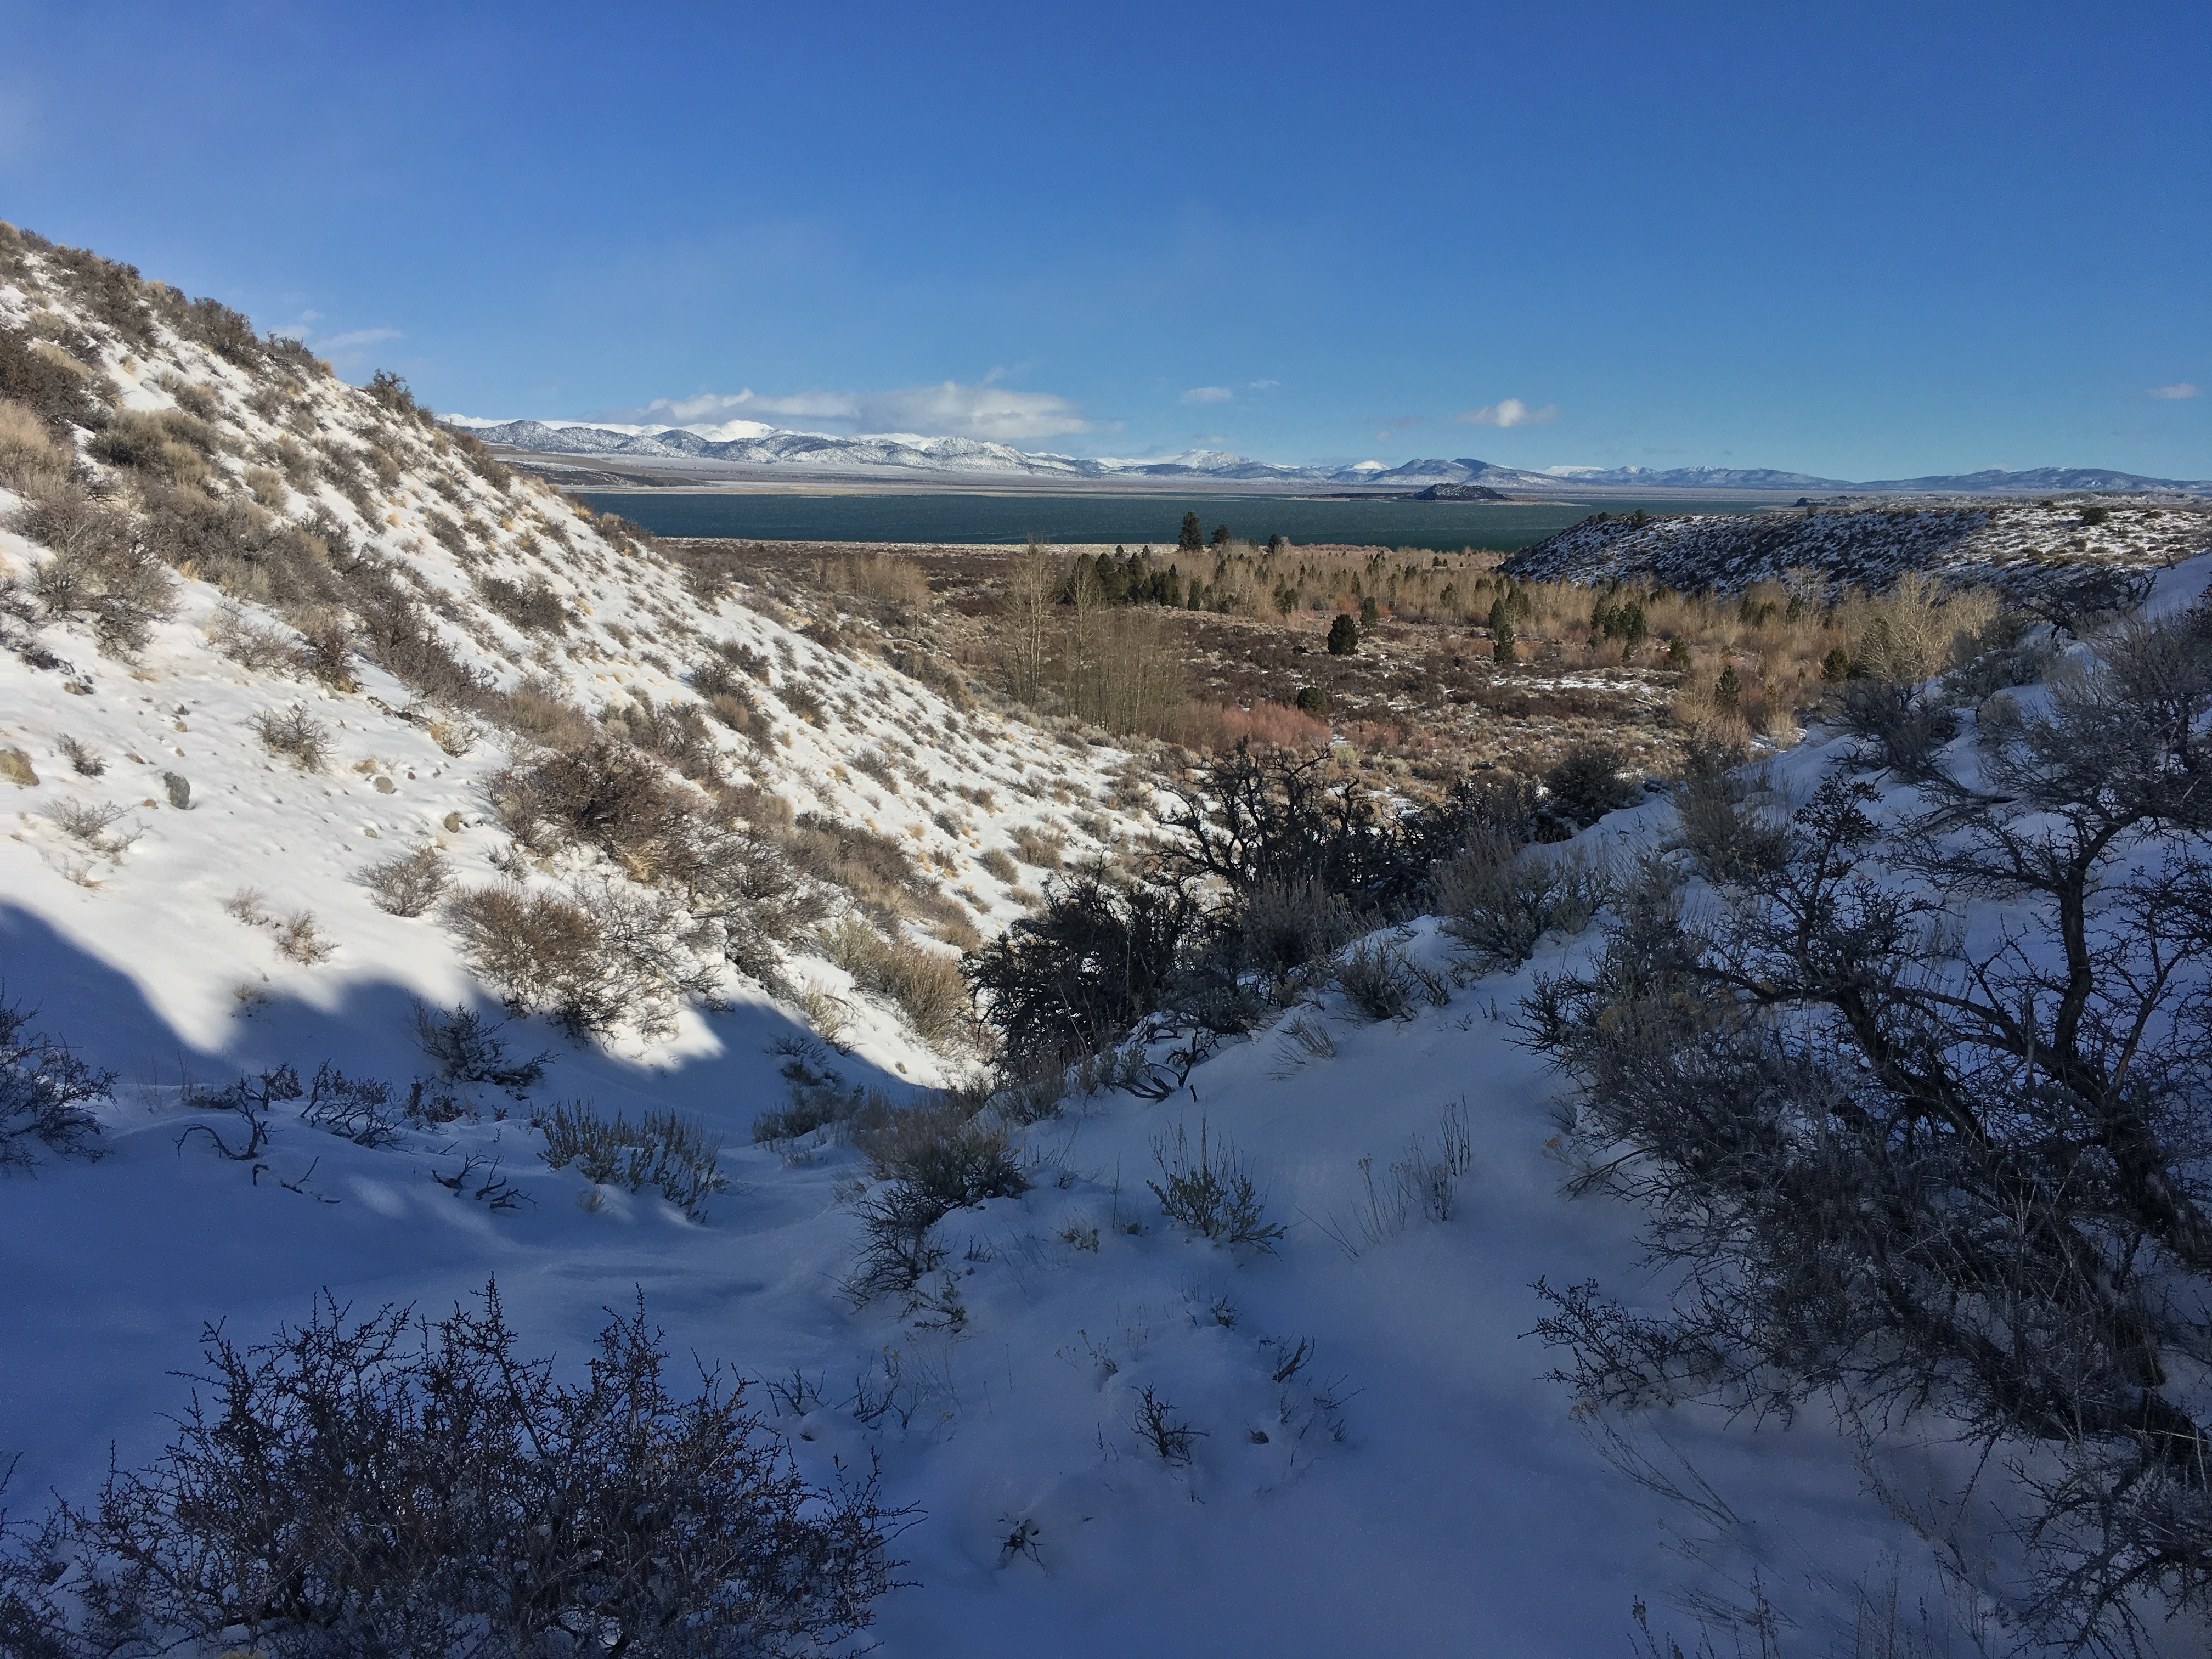 Descending into Lee Vining Canyon with views of Mono Lake and Negit Island. Photo by Andrew Youssef.